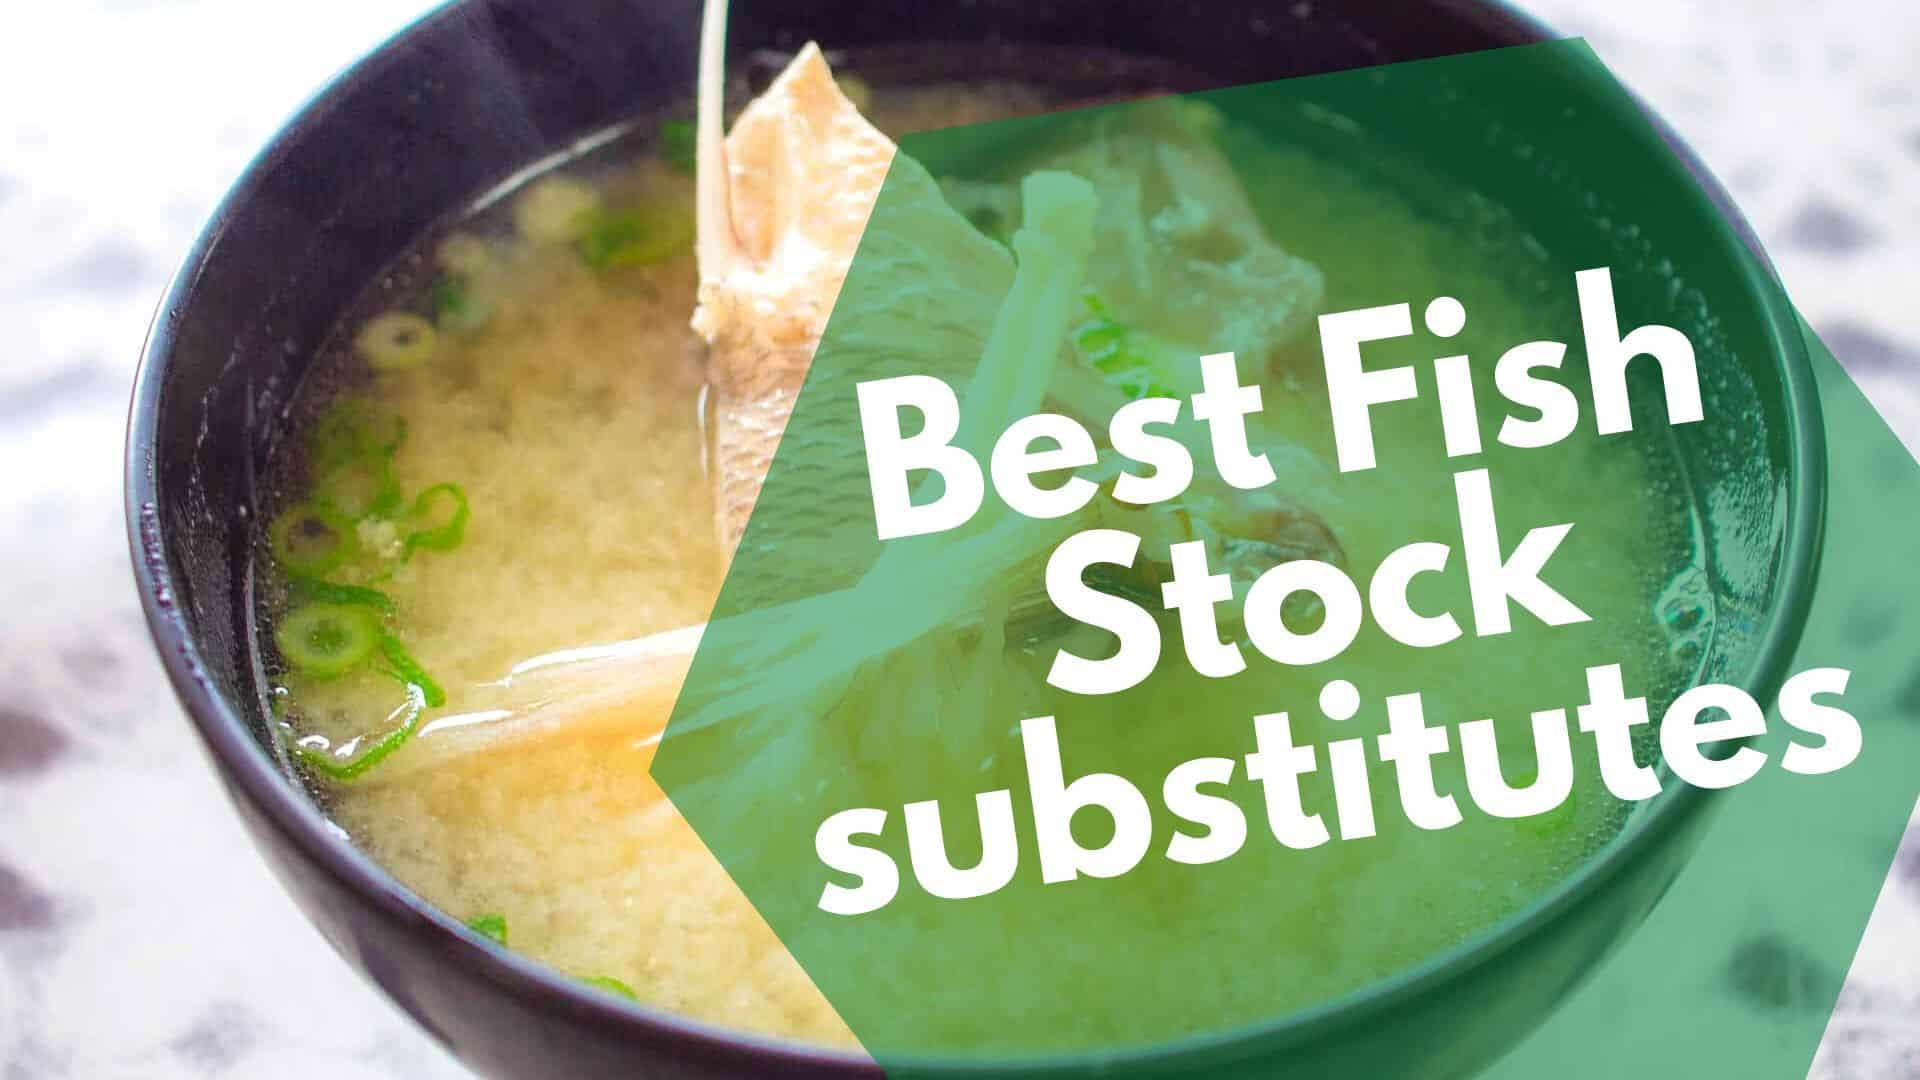 Best Fish Stock substitutes